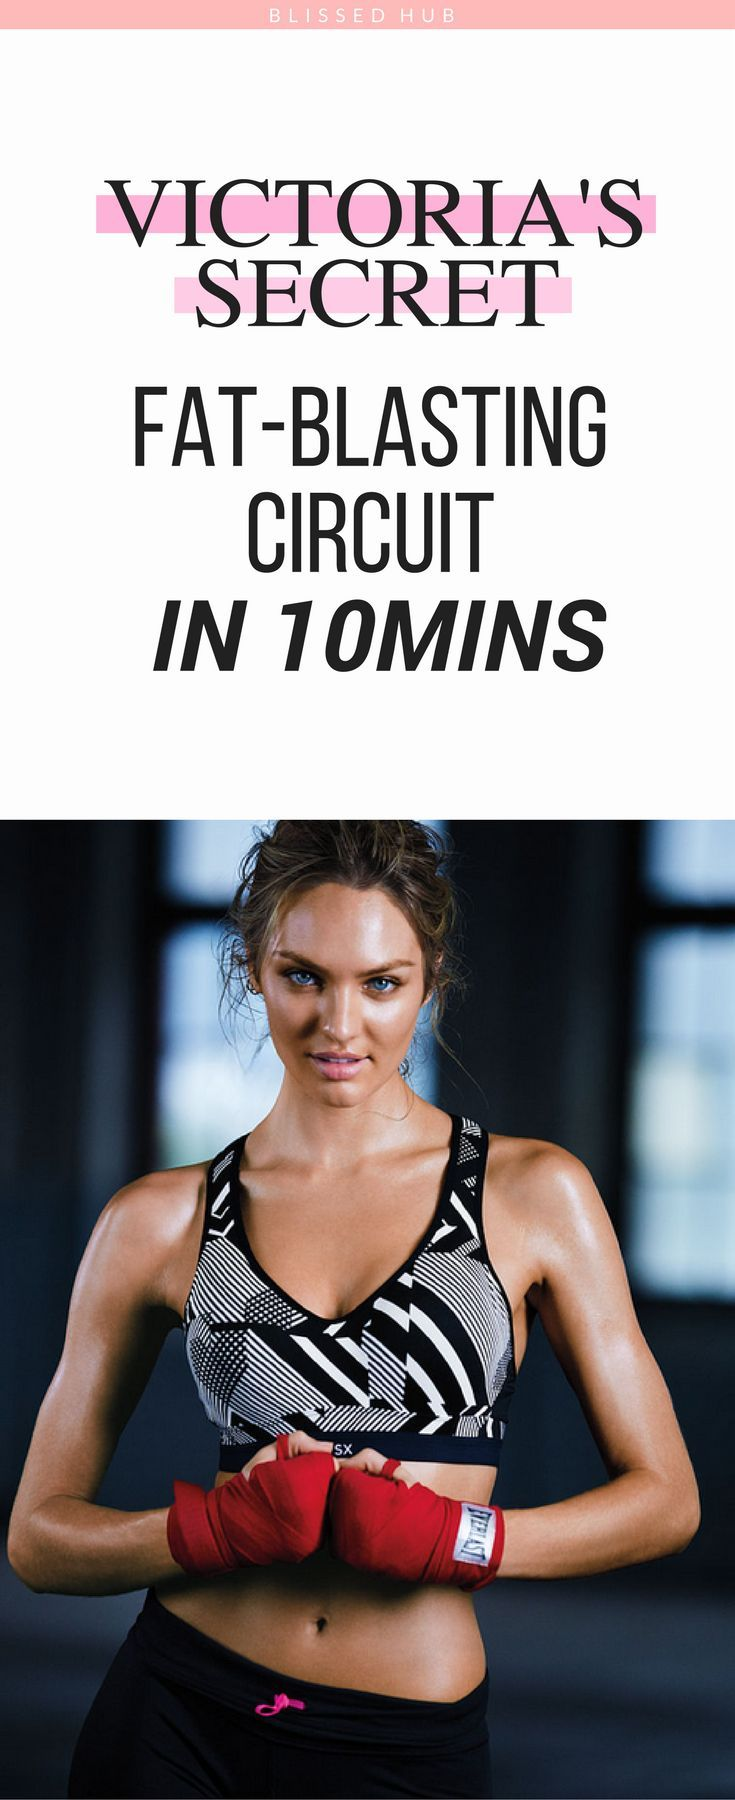 VICTORIA'S SECRET FAT-BLASTING CIRCUIT IN 10 MINUTES - Train, Fitness, Workouts, Health and fitness, exercises, beginners, inspiration, fitness motivation, fitness inspiration - I can't believe how easy and quick these exercises are! The fact that the Angels do these exercises makes me even more motivated to keep going!